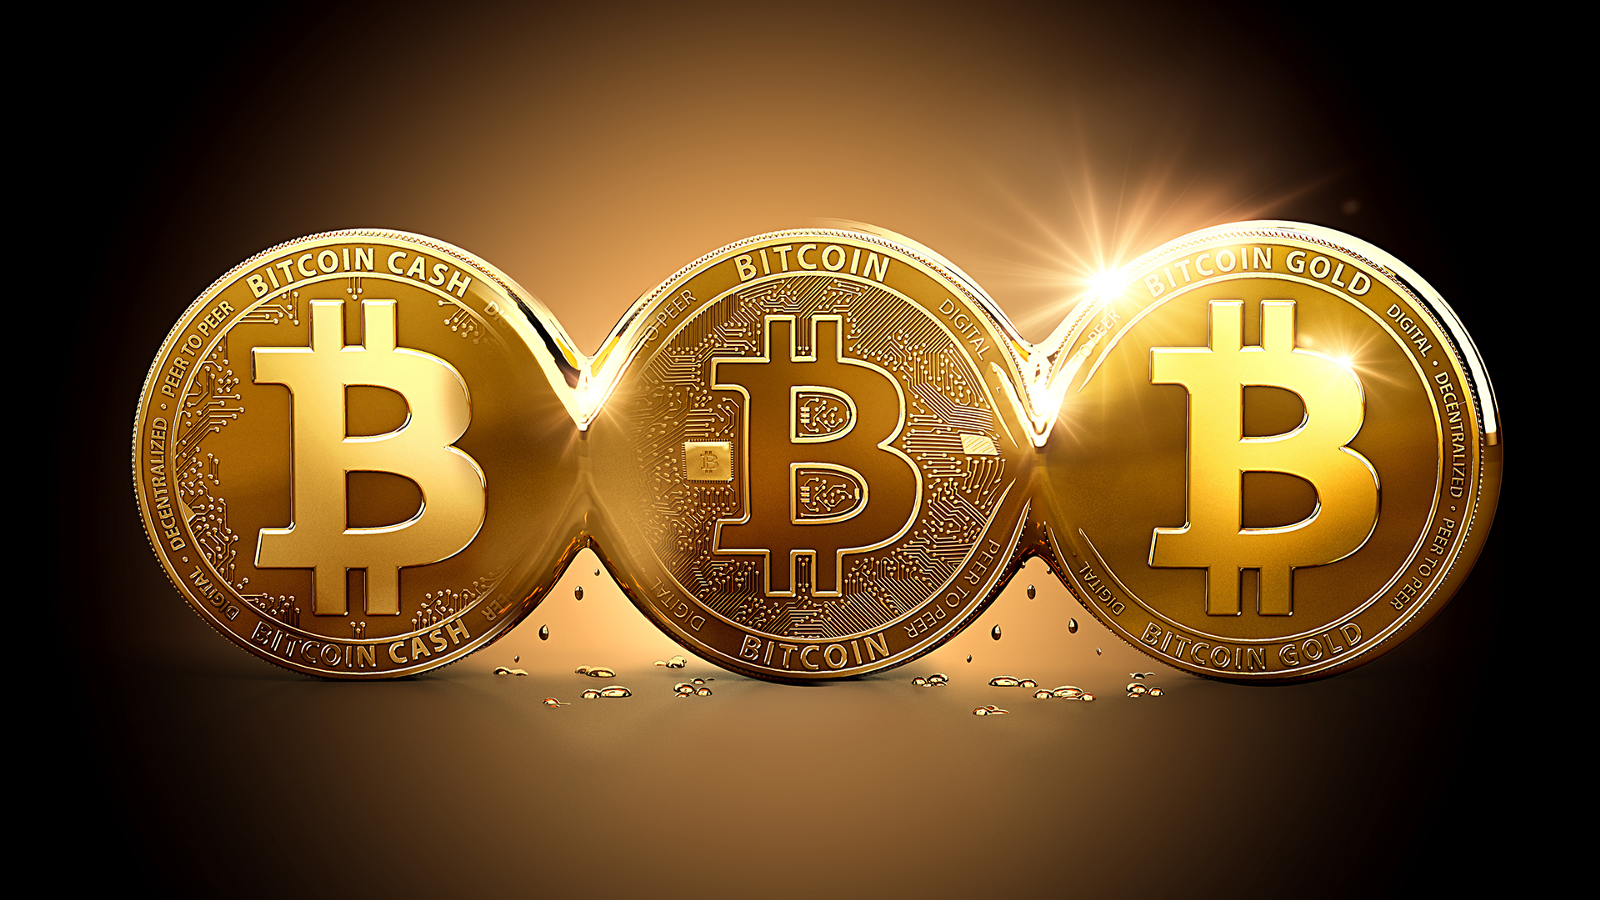 Life after Bitcoin: the future of digital currencies